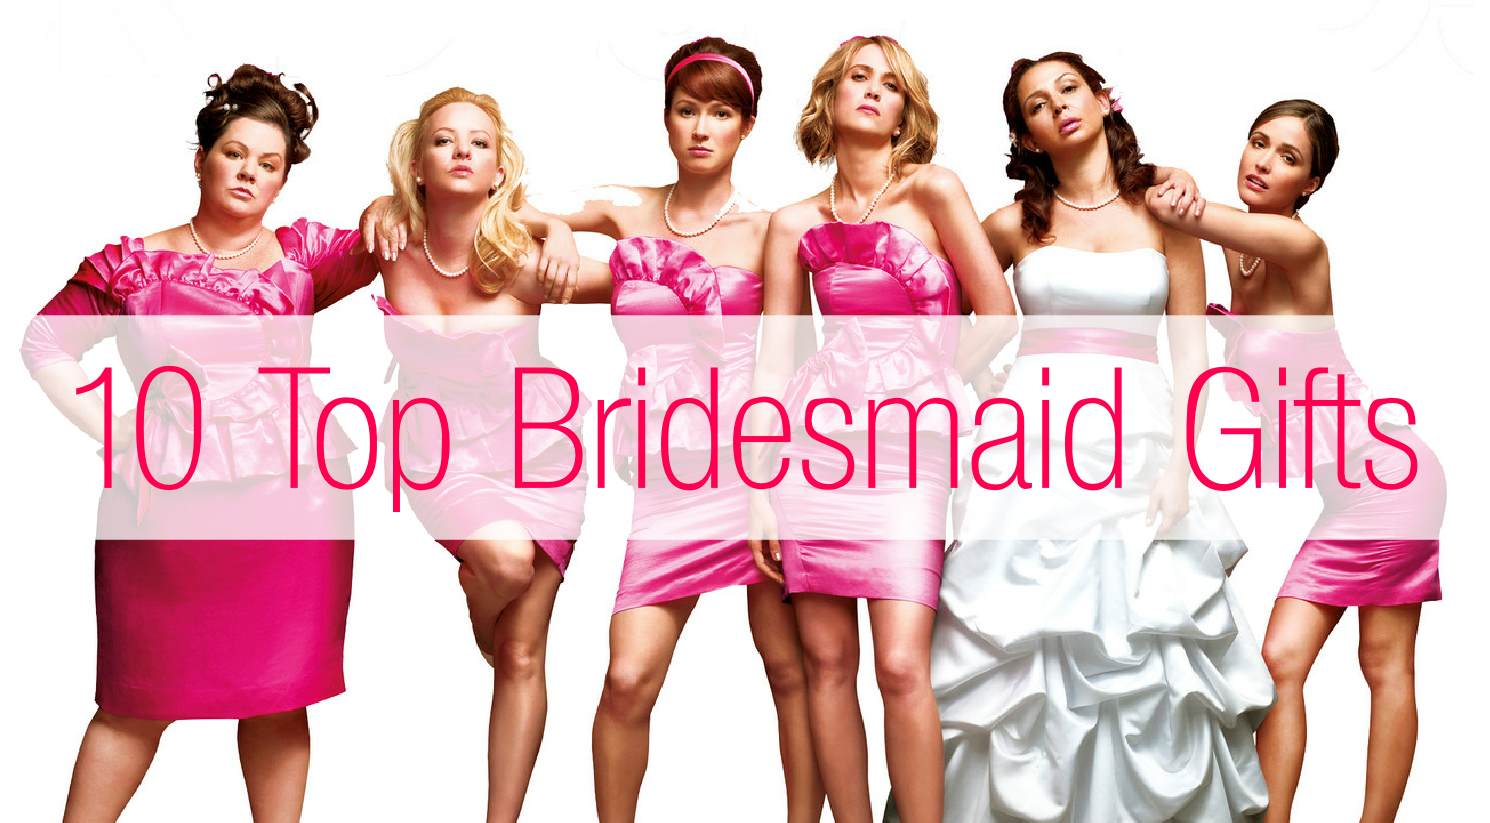 Wedding Present Ideas For Bridesmaids : 10 Top Bridesmaid Gift Ideas? Confetti and Curves